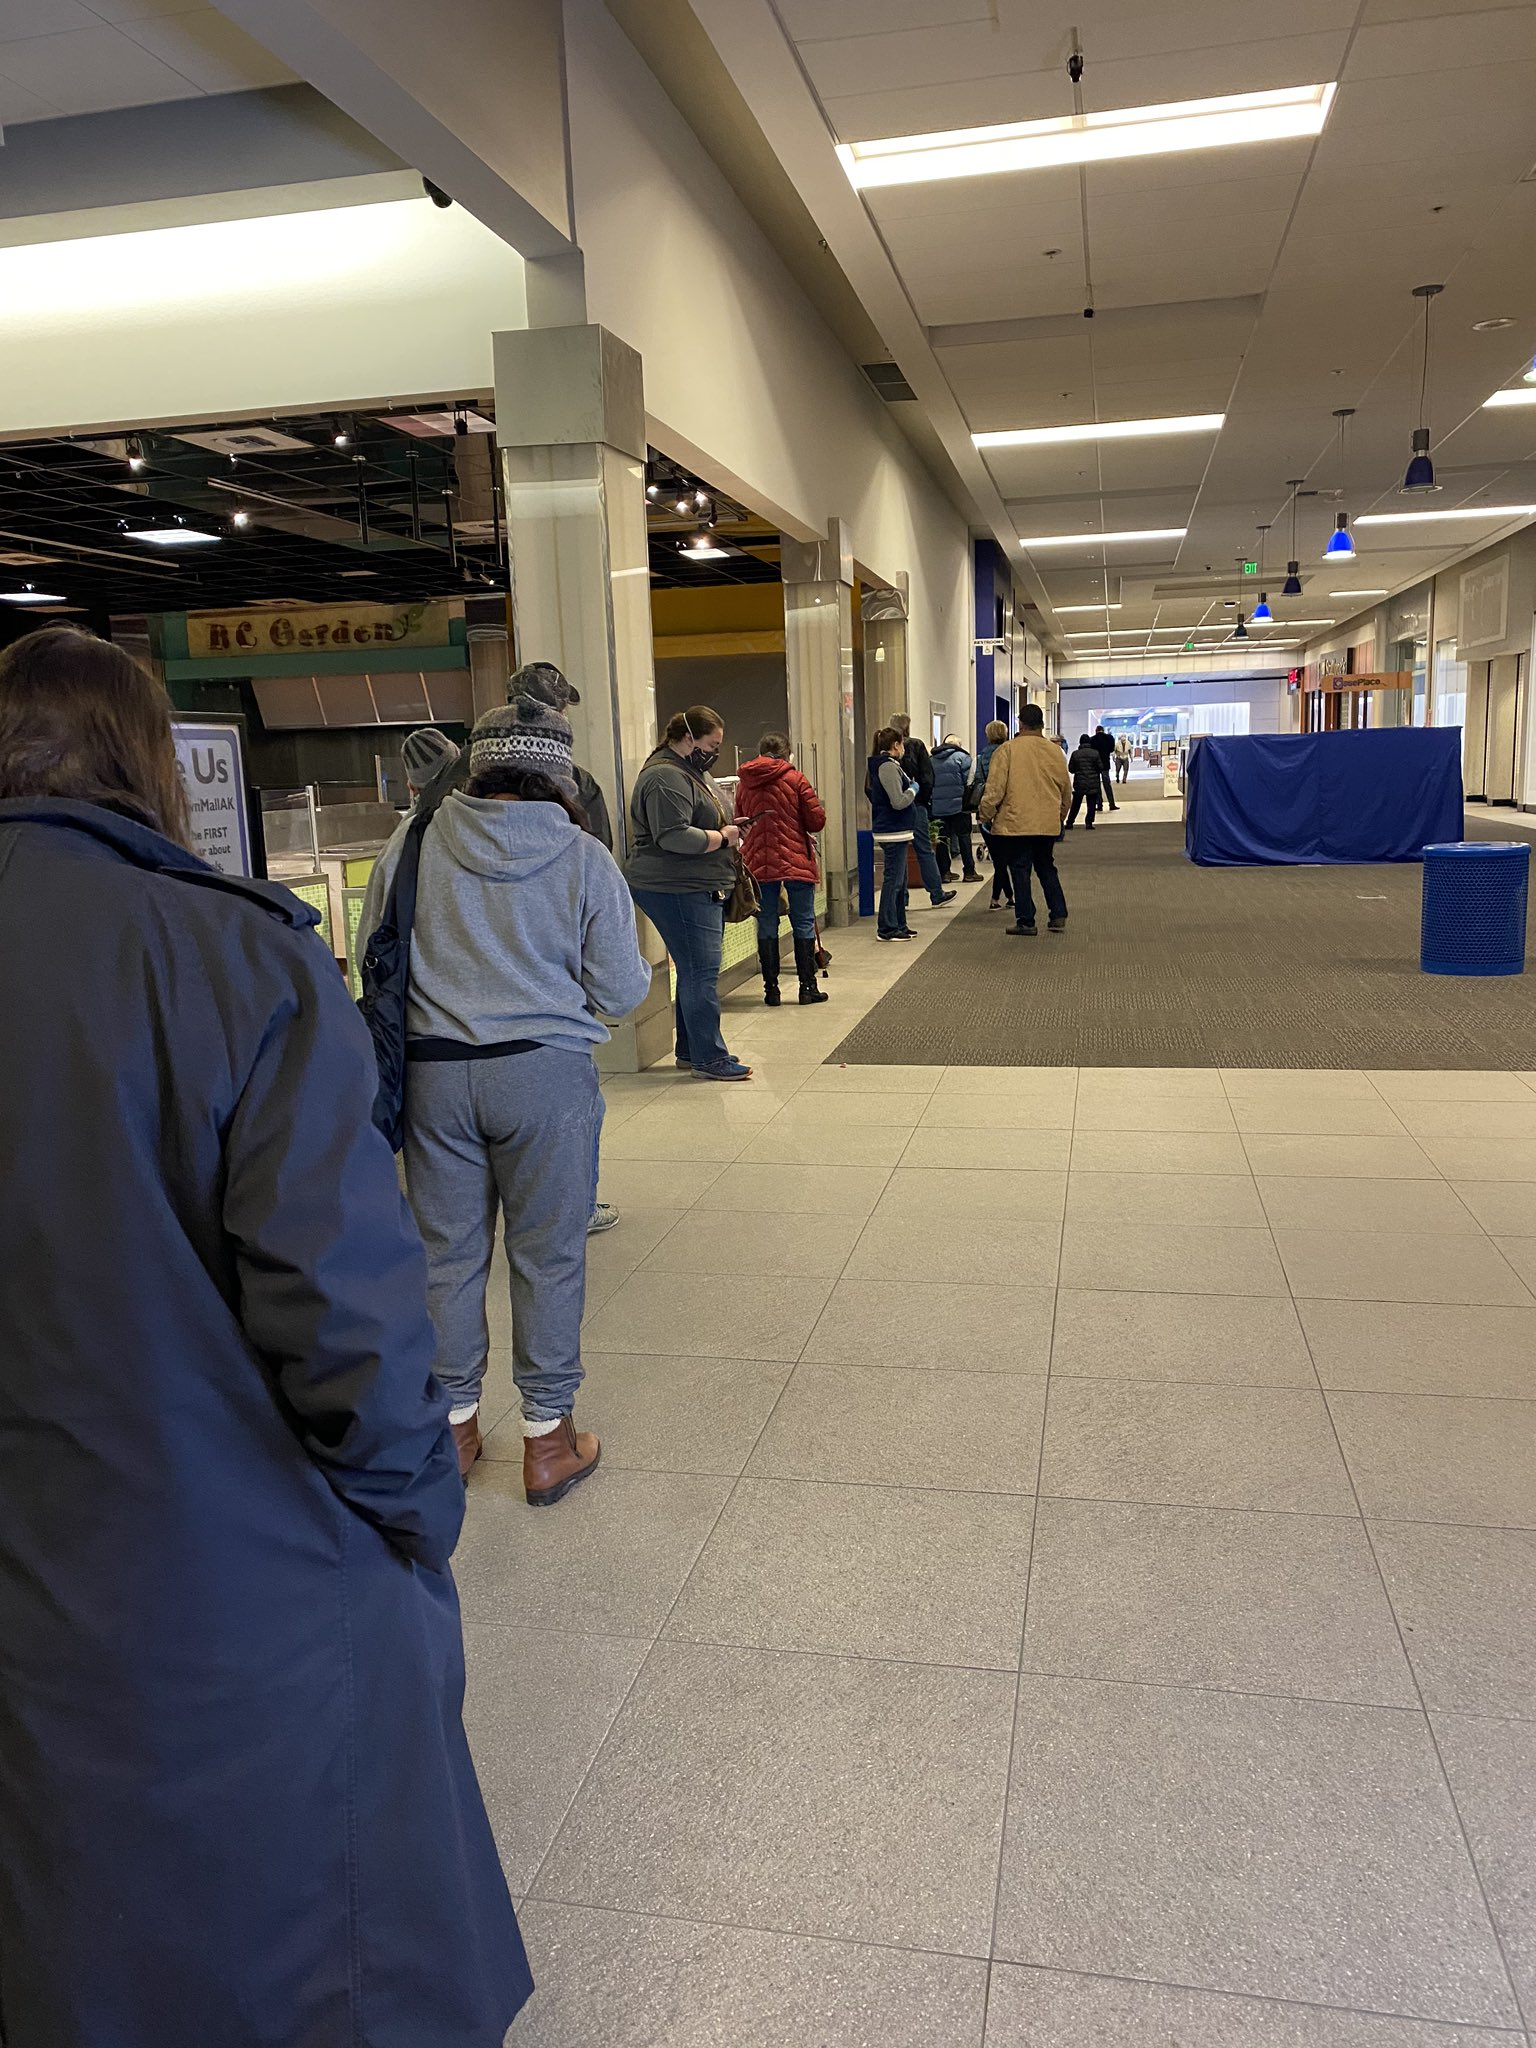 Early voting at the Midtown Mall in Anchorage, Alaska.